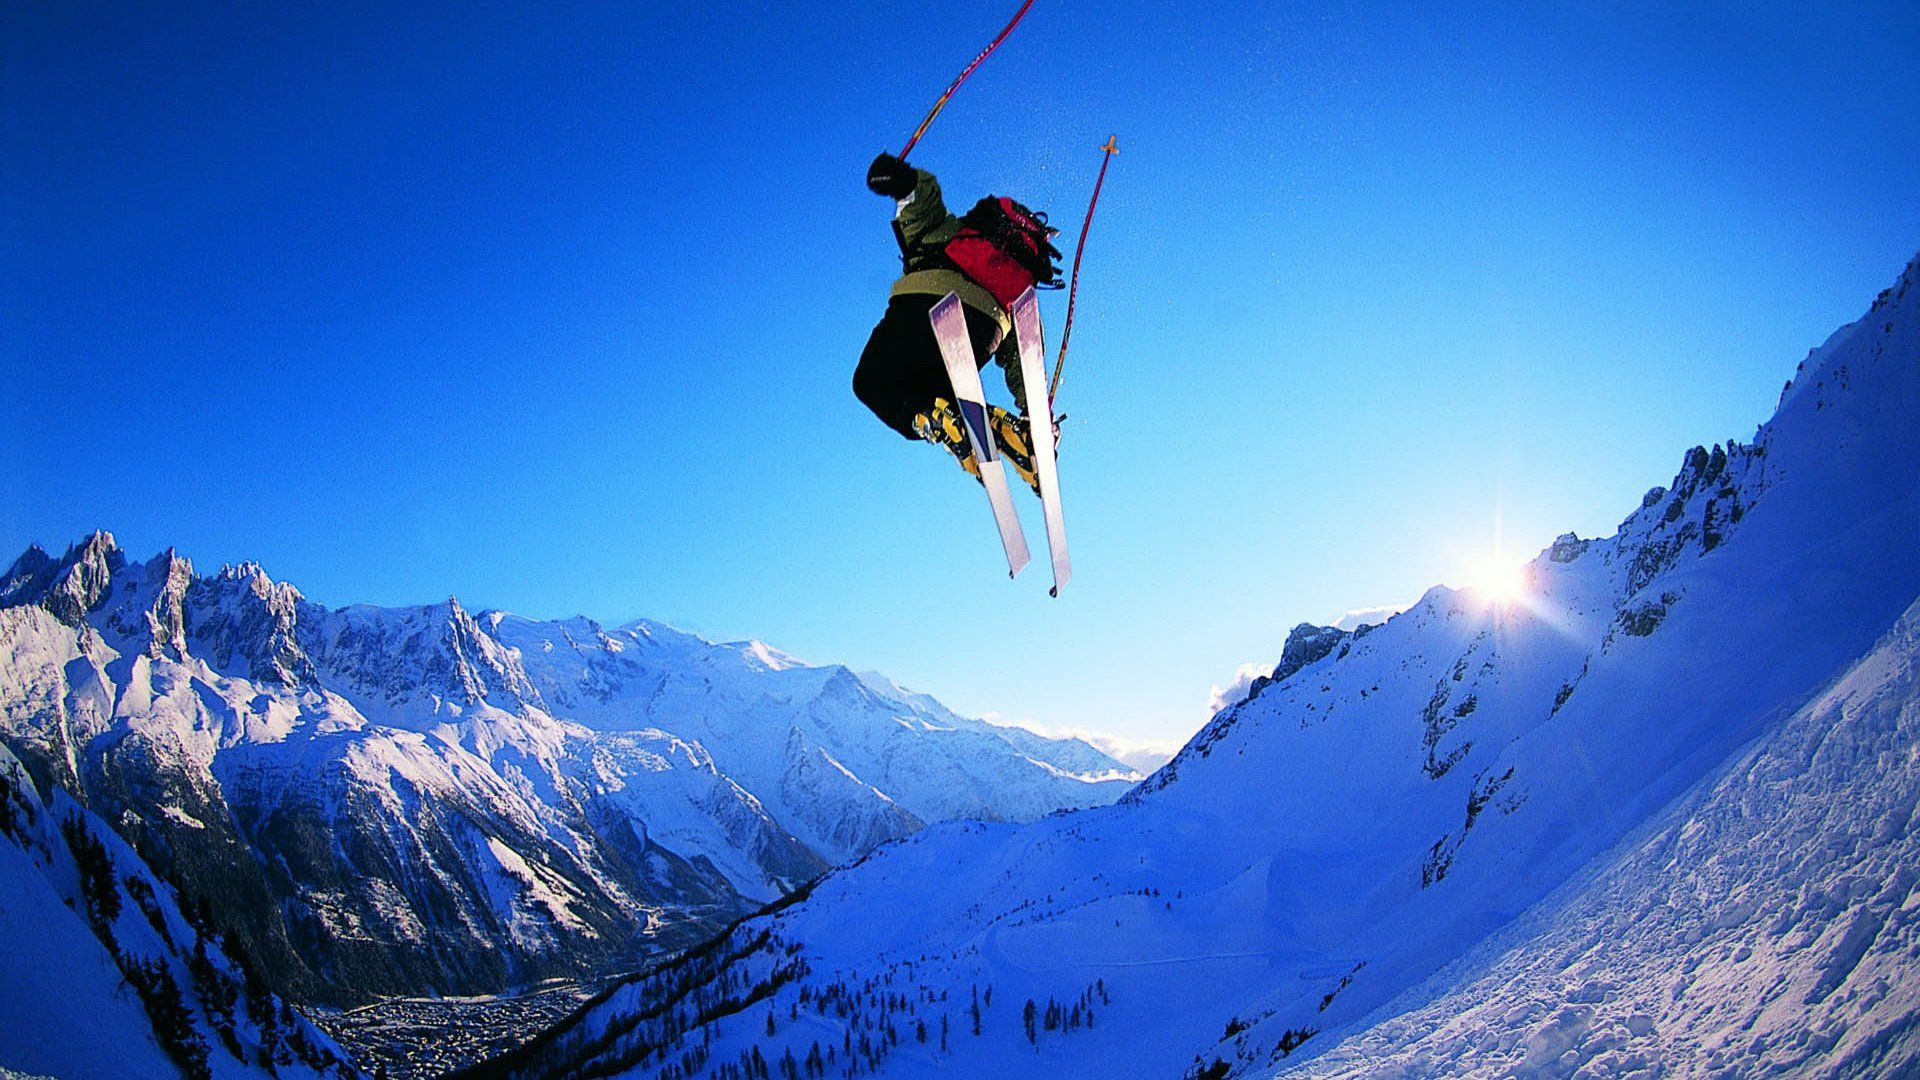 Snow Skiing Wallpapers   Top Snow Skiing Backgrounds 1920x1080